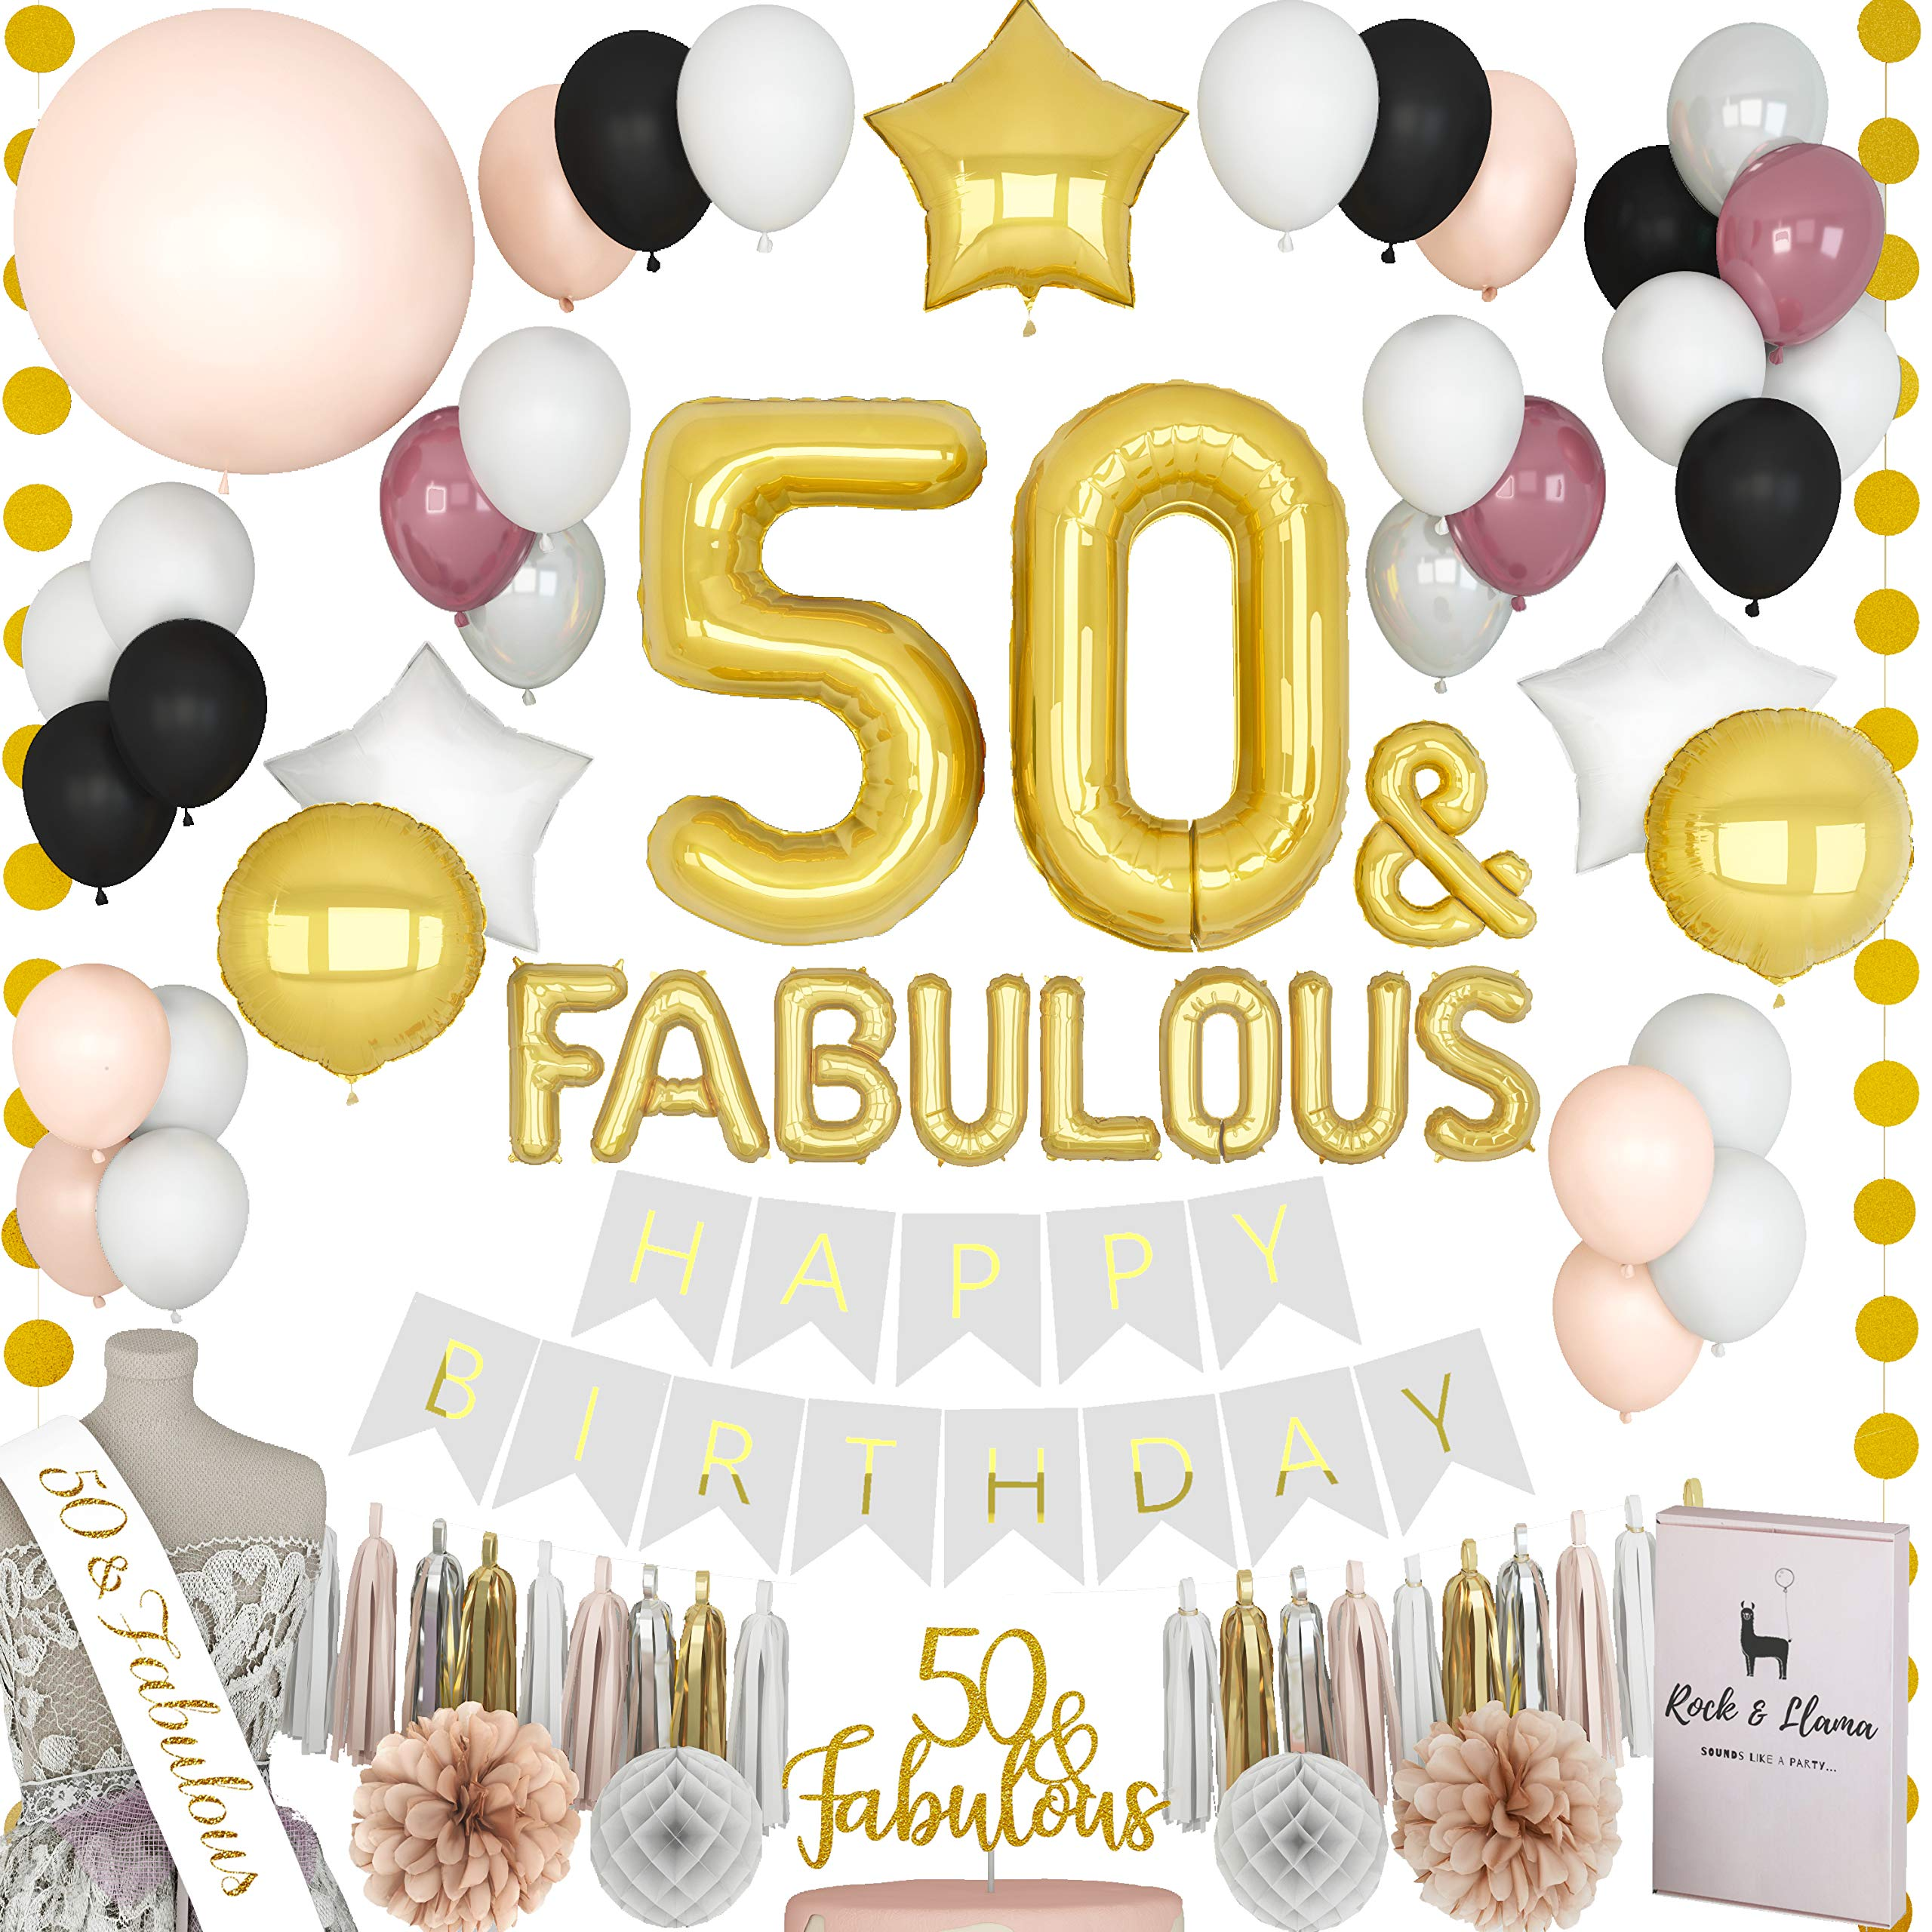 FABULOUS 50th Birthday Decorations + (50 SASH) + (FABULOUS Letter Balloons) + (Cake Topper) | Gold Black Burgundy Sixty Bday Party Supplies for Women | (71+ Items)